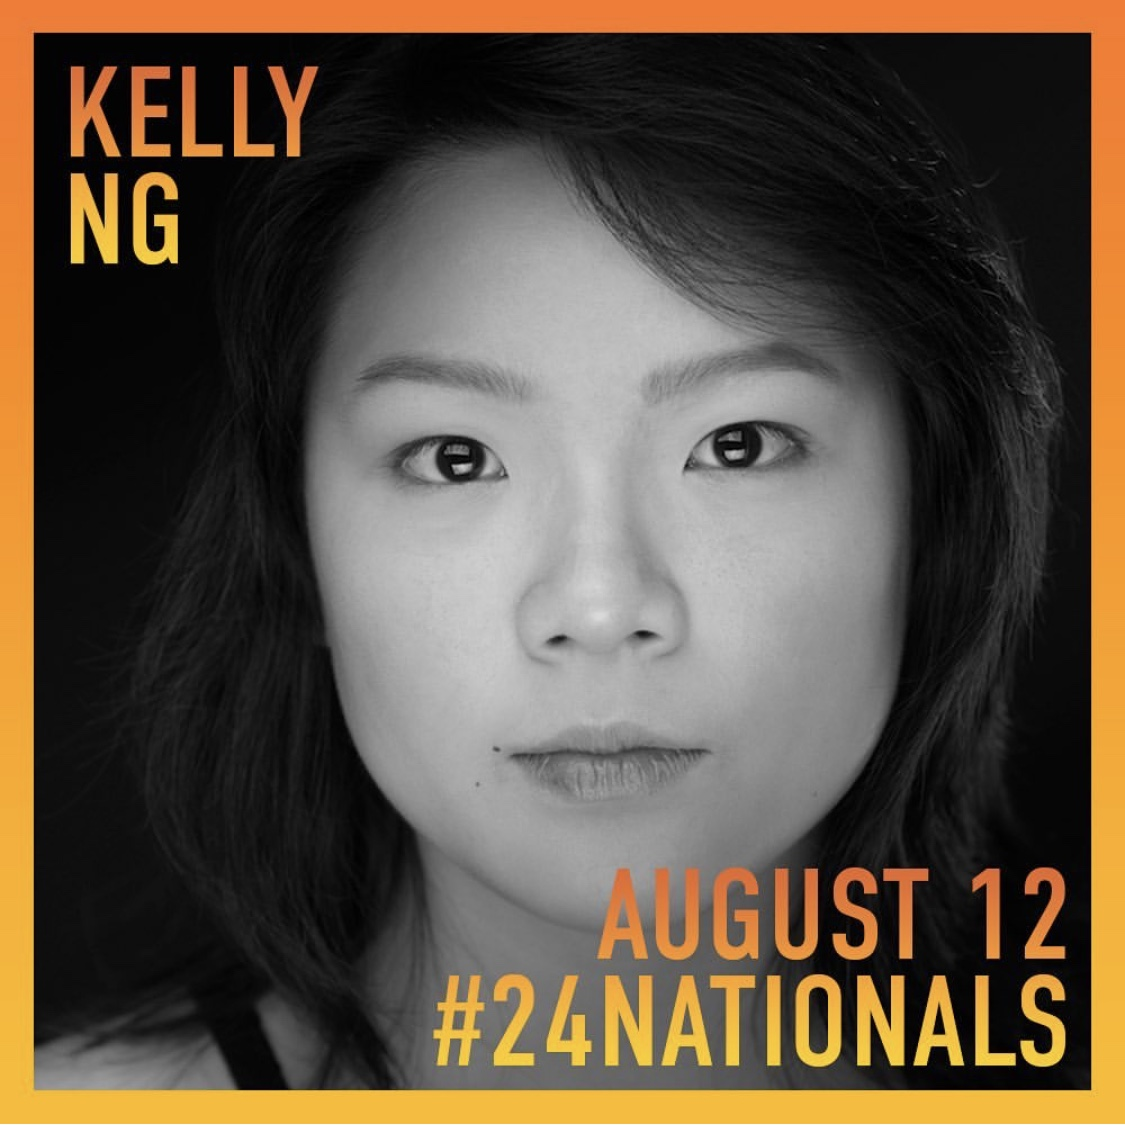 """24 Hour Plays: Nationals """"Monster House"""" - Written by Rachel Calnek-SuginDirected by Maggie MonahanProduced by Abigail Jean-BaptisteFeaturing Carolyn Friedman, Carina Goebelbecker, Kelly Ng, Kezie Nwachukwuhttp://www.playbill.com/article/44-young-theatremakers-flex-their-muscles-with-24-hour-plays-nationals"""